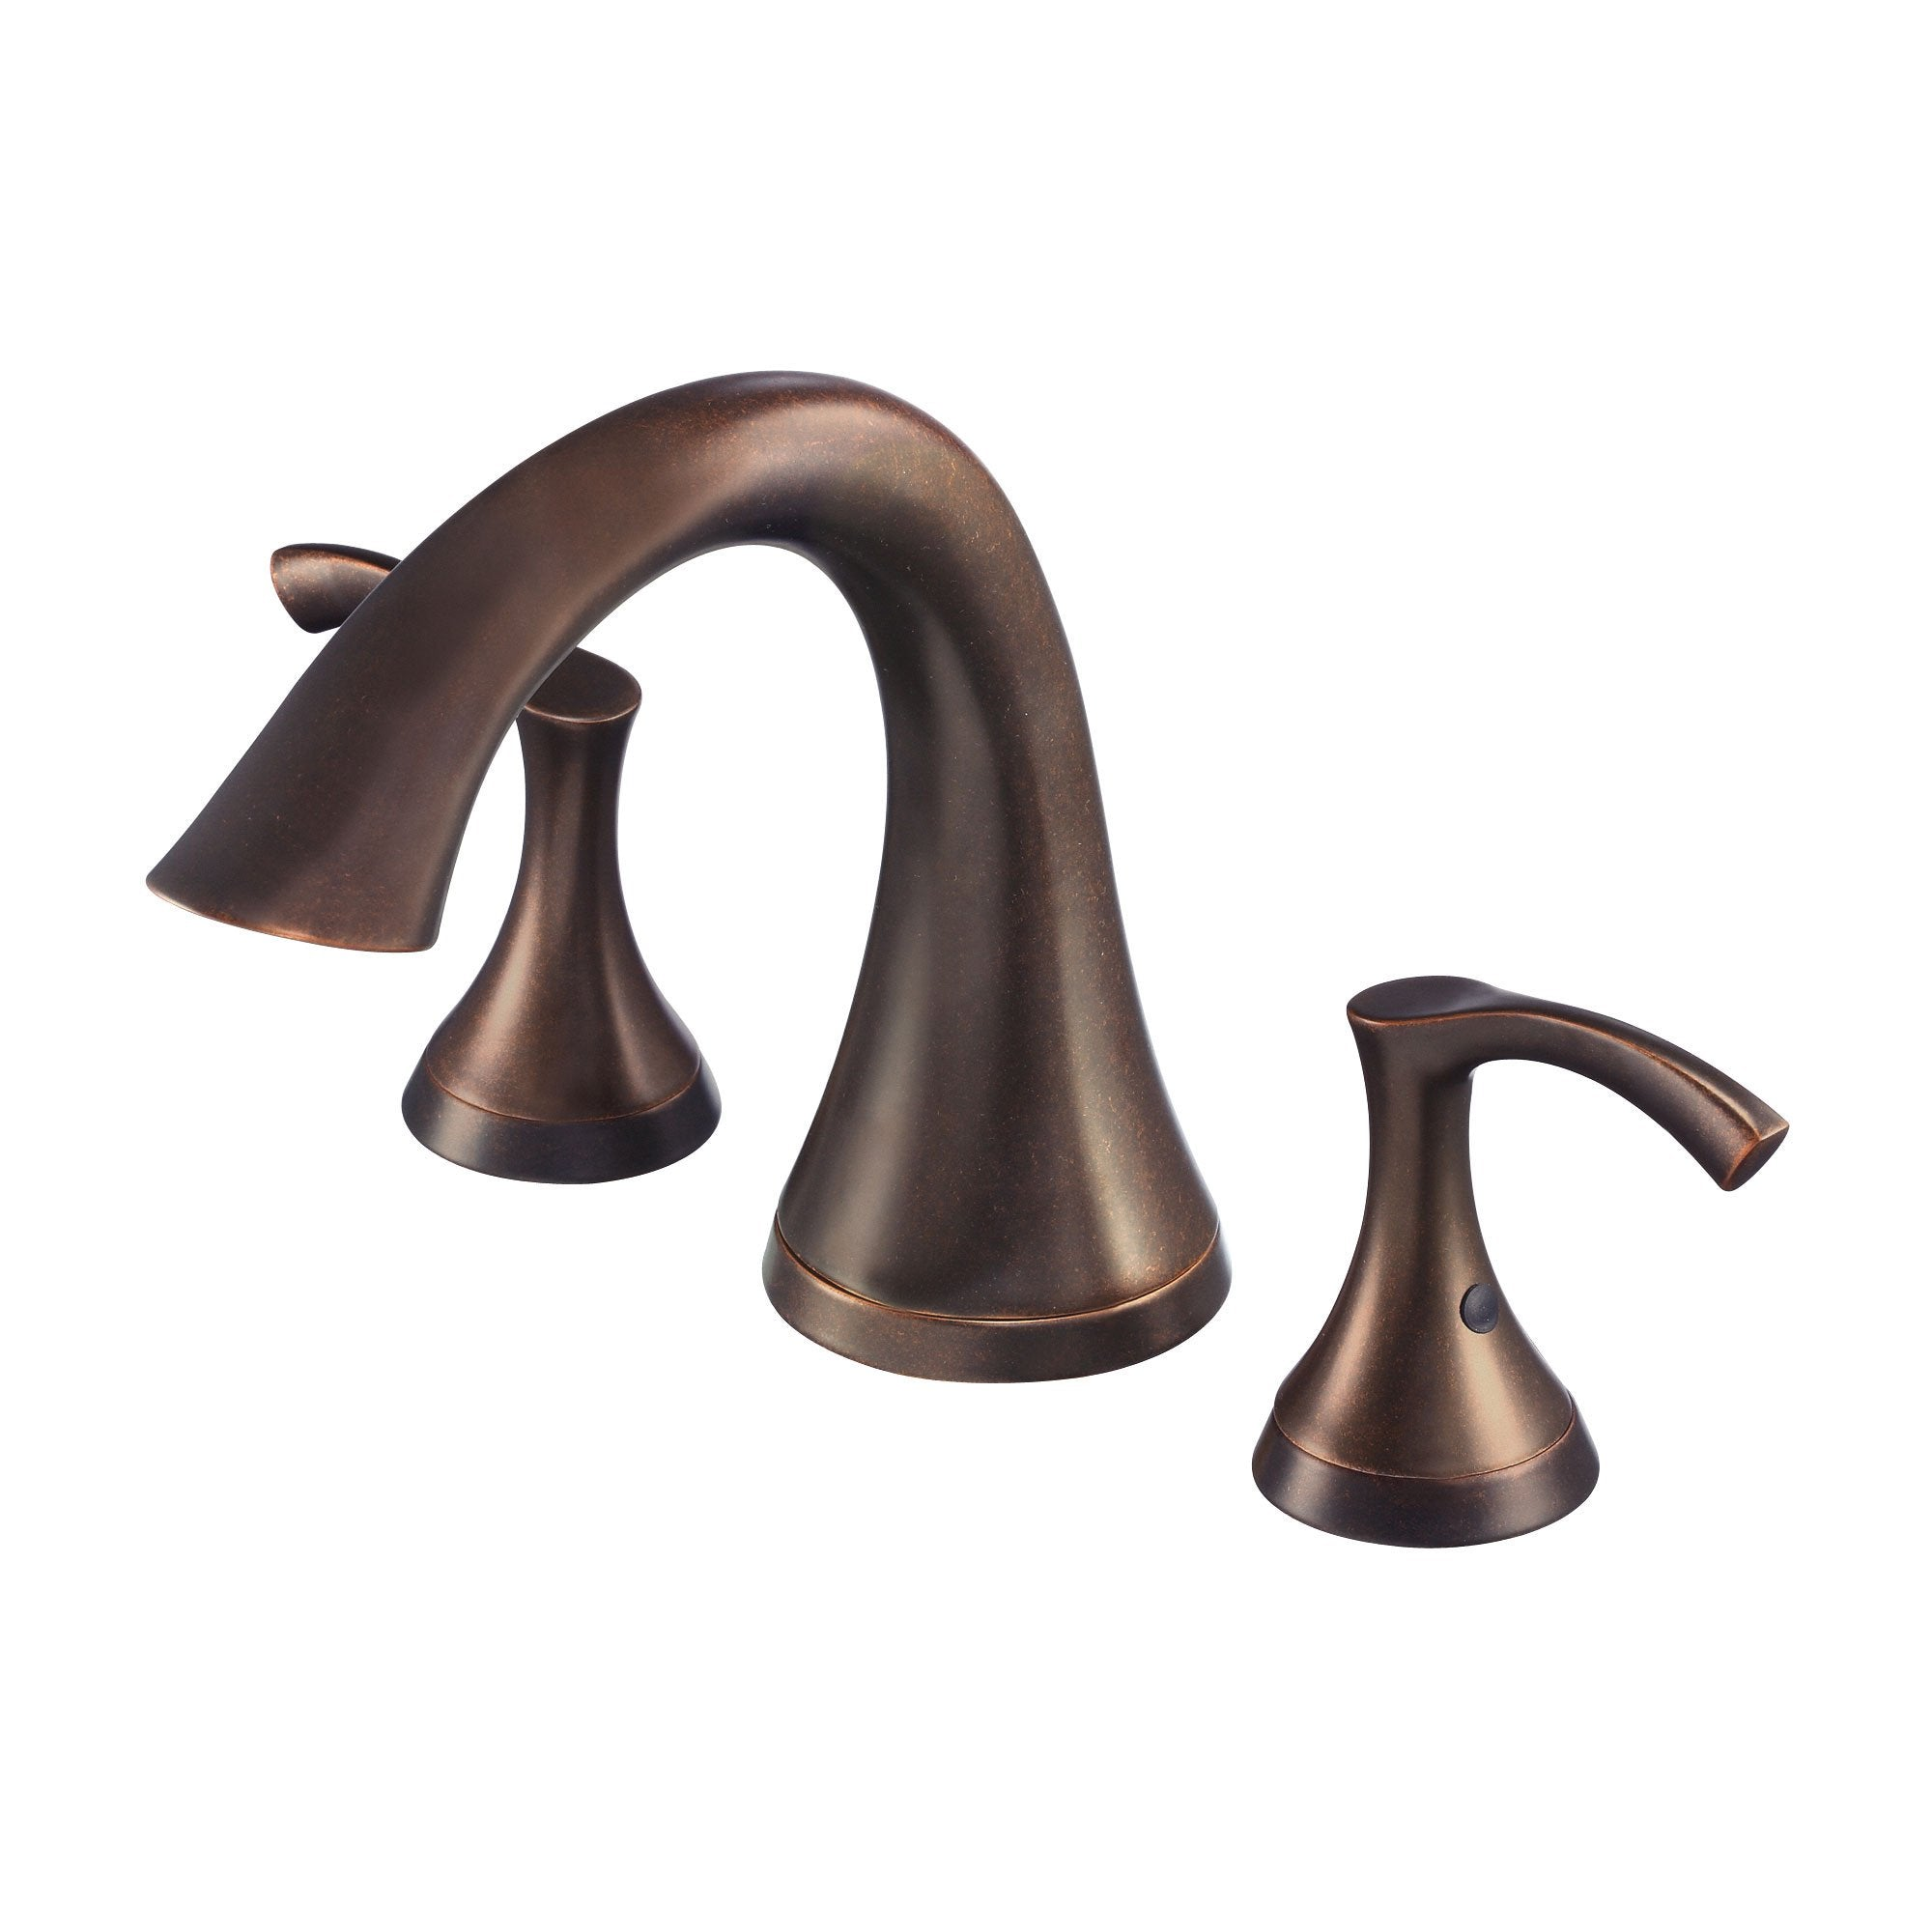 Danze Antioch Tumbled Bronze High Volume Roman tub Filler Faucet INCLUDES Rough-in Valve